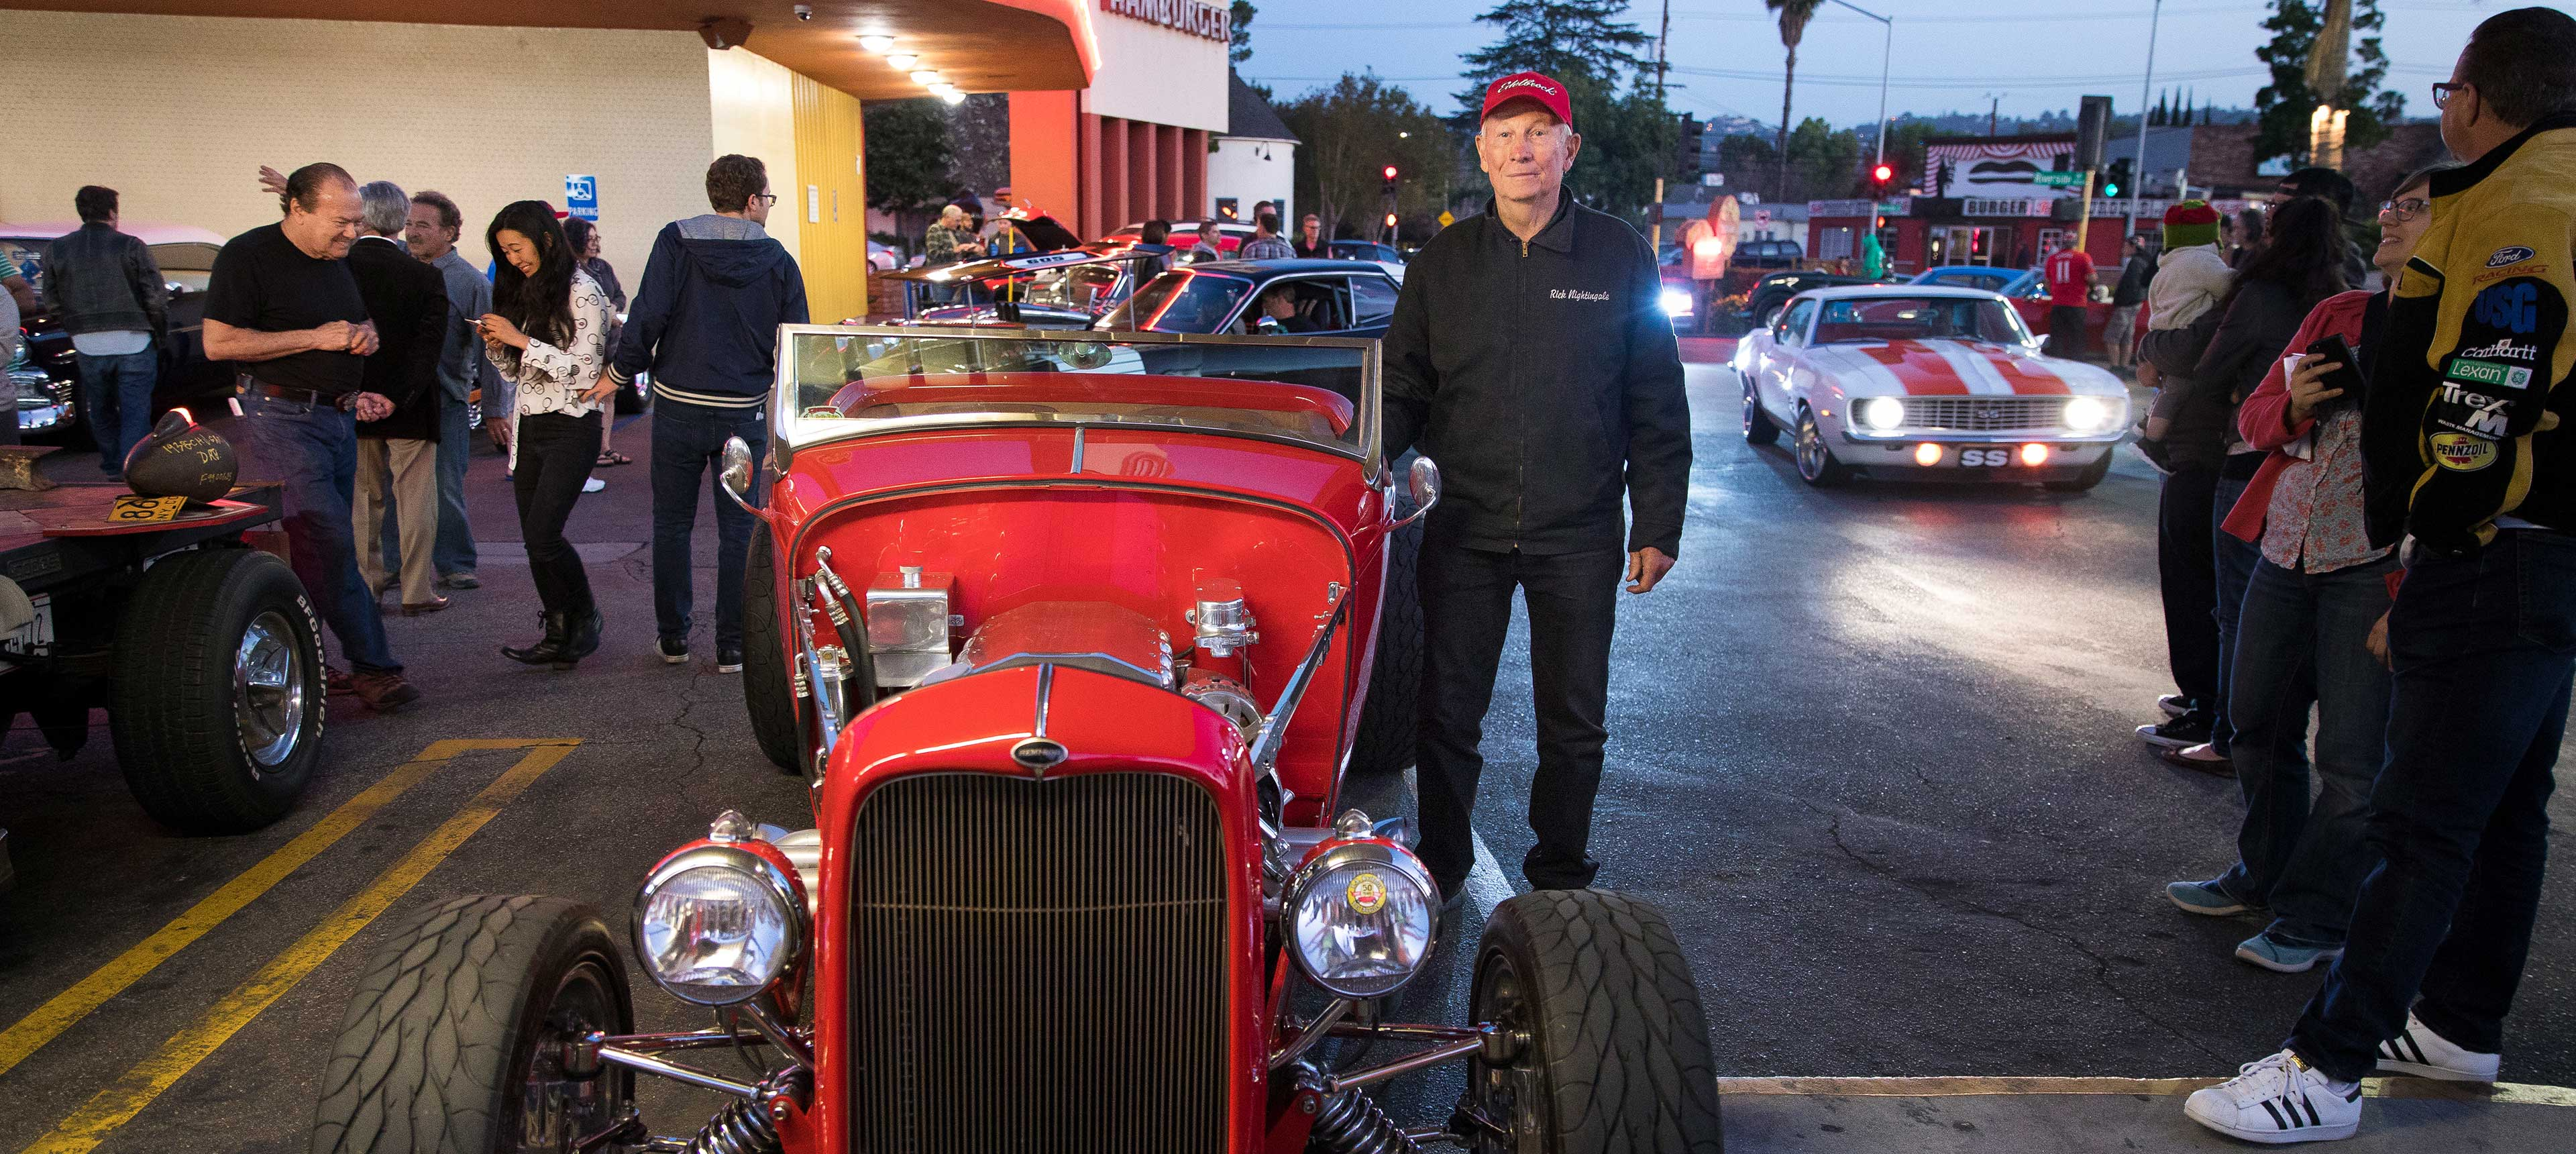 Cruising At The Car Show Toluca Lake - Classic car show california